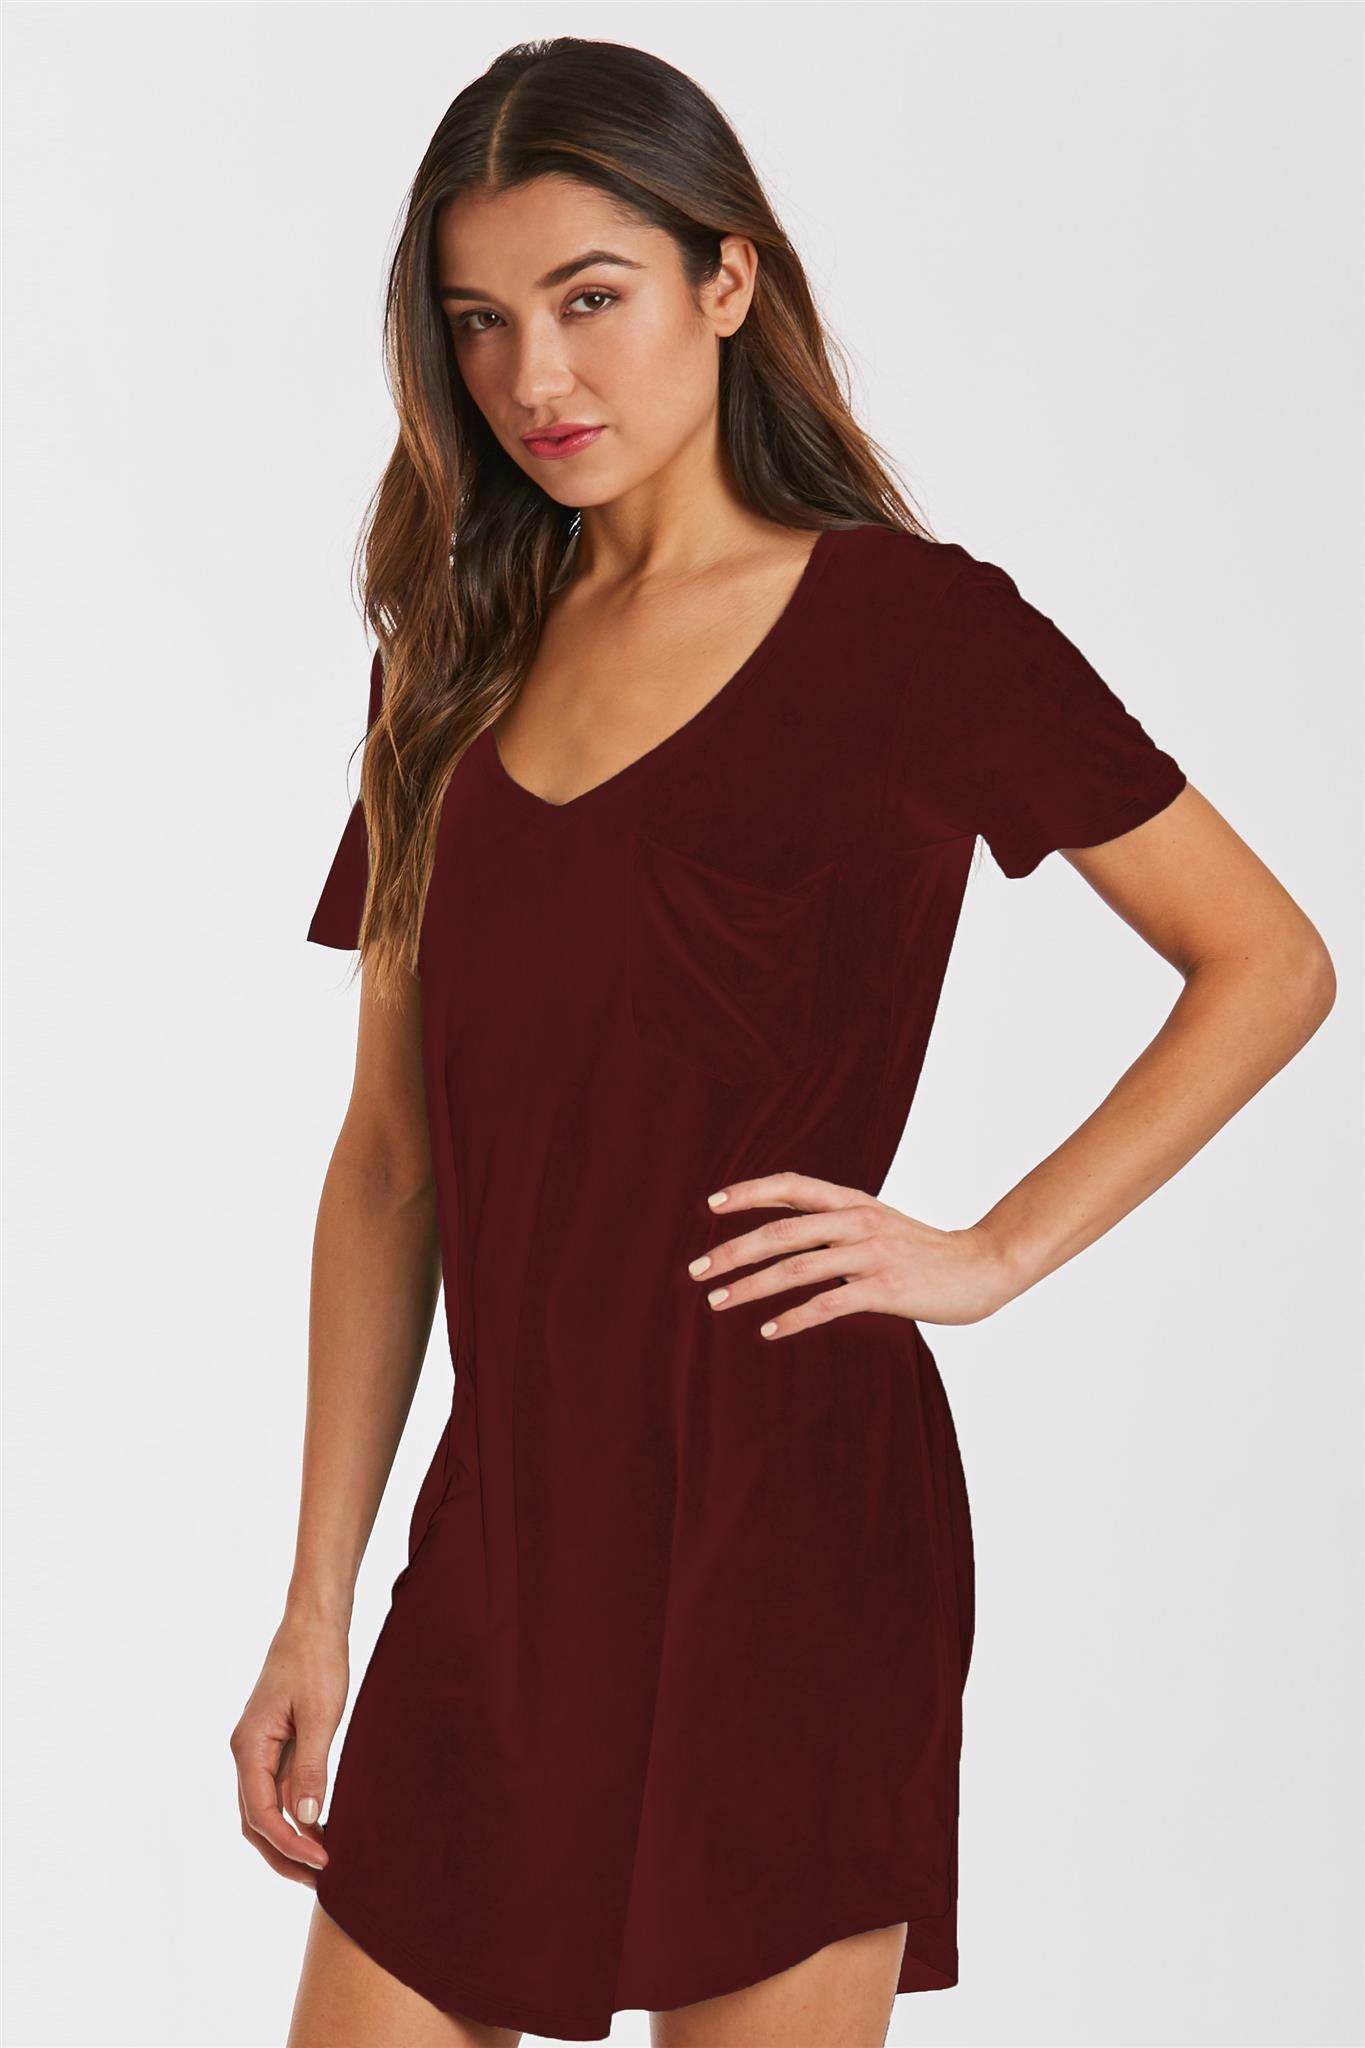 74ac66fca4c8 Cassidy suede tshirt dress burgundy | Products | Dresses, T shirt ...